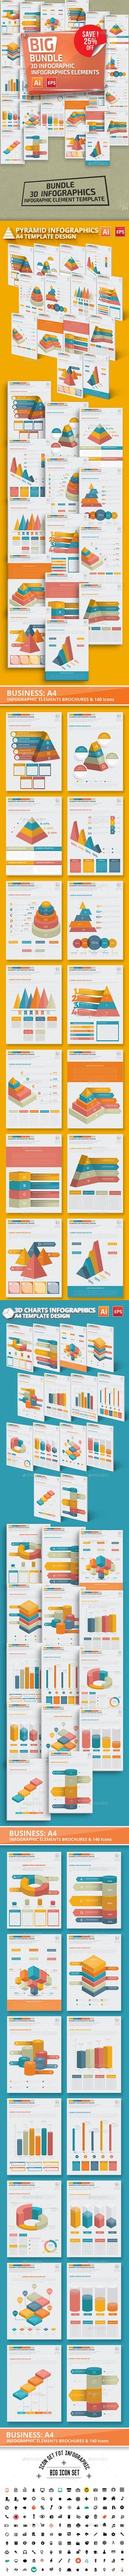 Bundle 3D Infographics Template Vector EPS, AI Illustrator